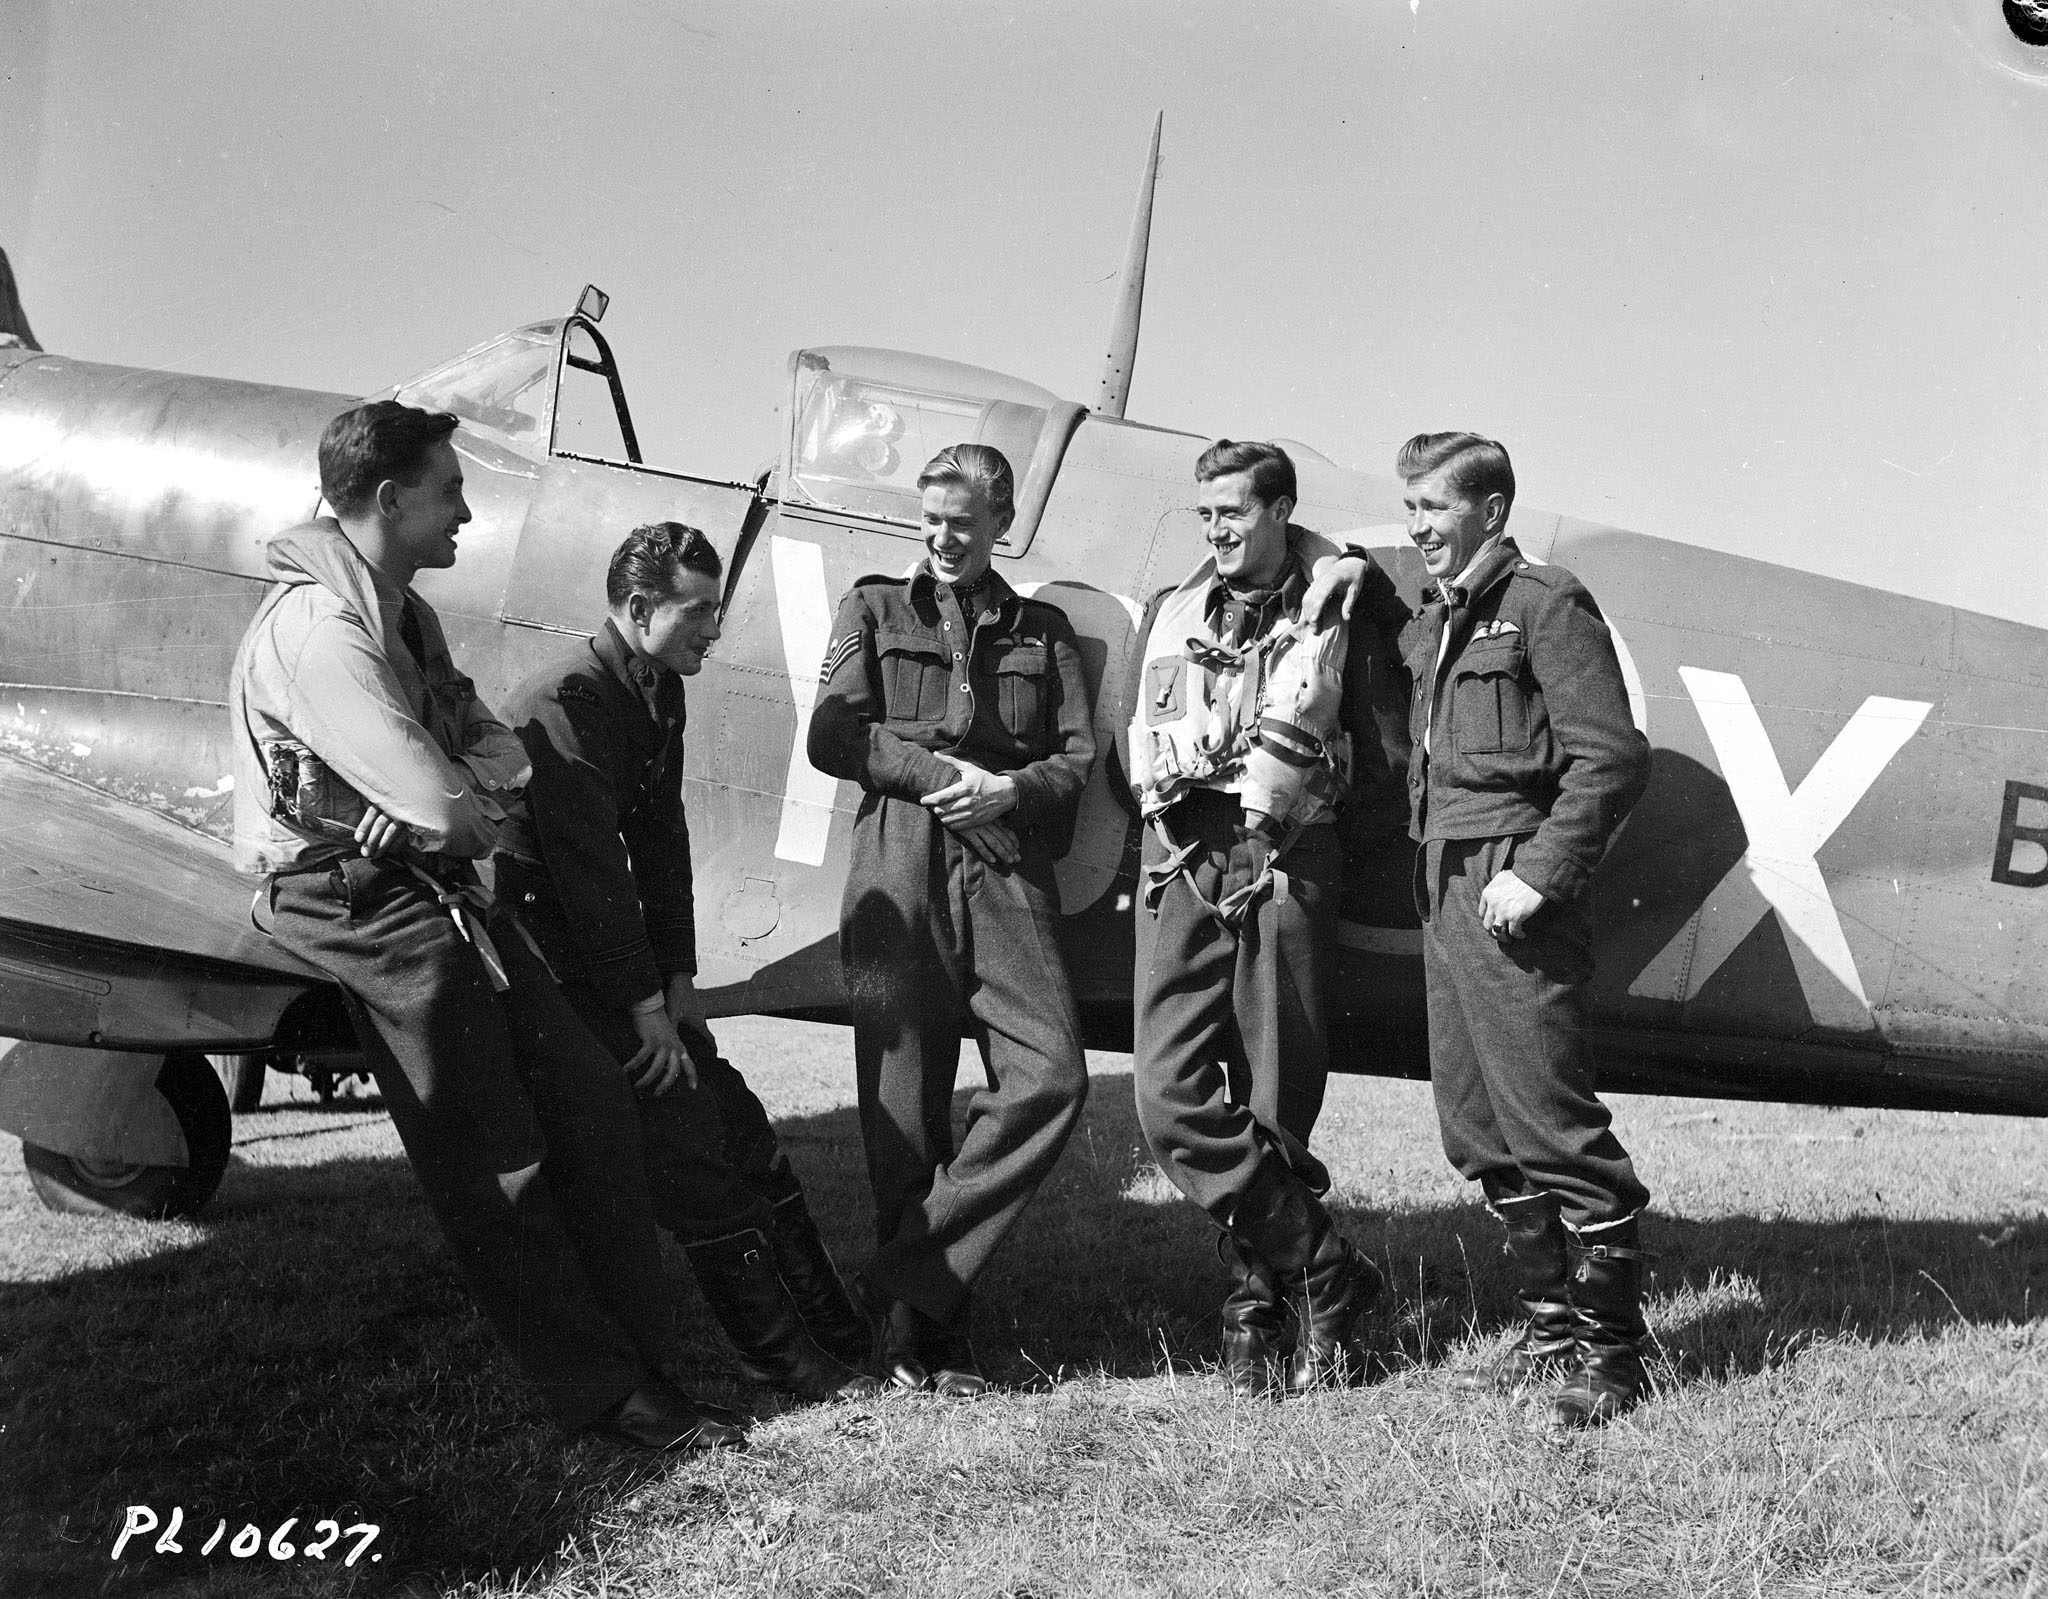 Five men wearing military uniforms stand in front of an aircraft.